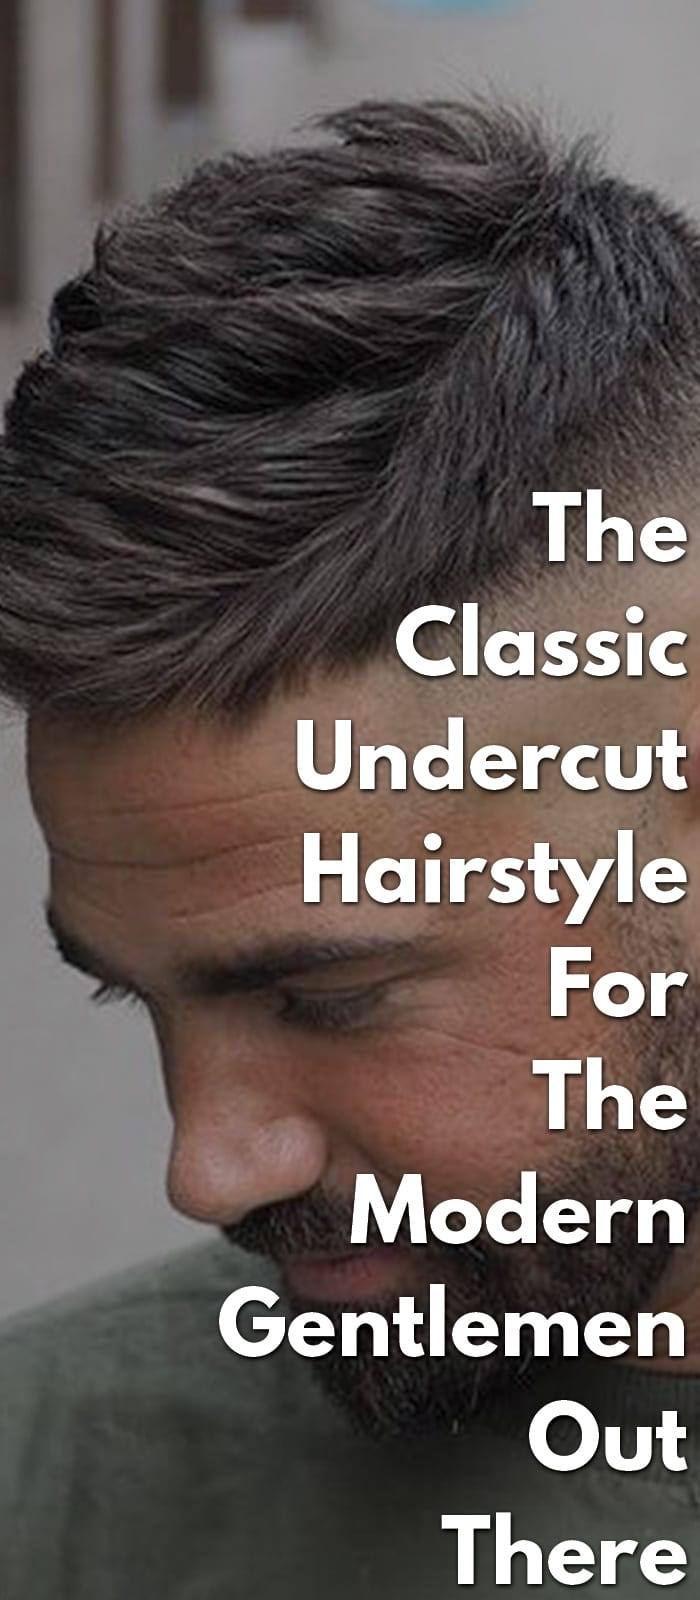 Classic Undercut Hairstyle For The Modern Gentlemen